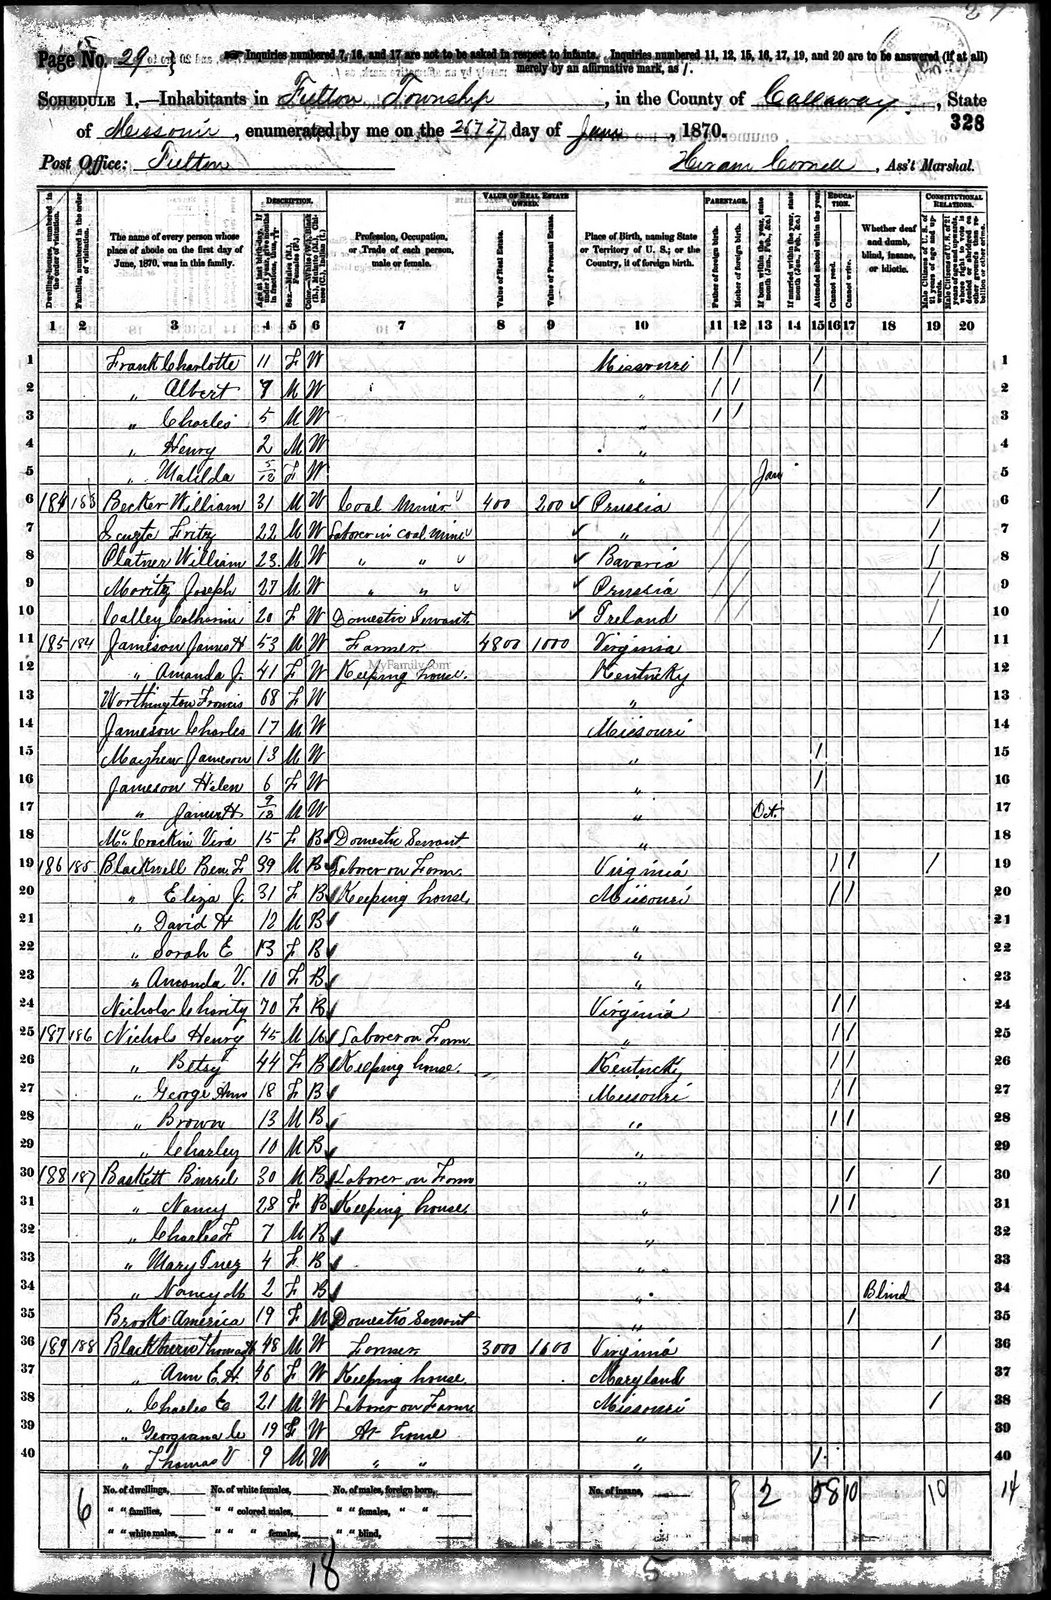 [Jacob+Frank+1870+Census+pg2.x]